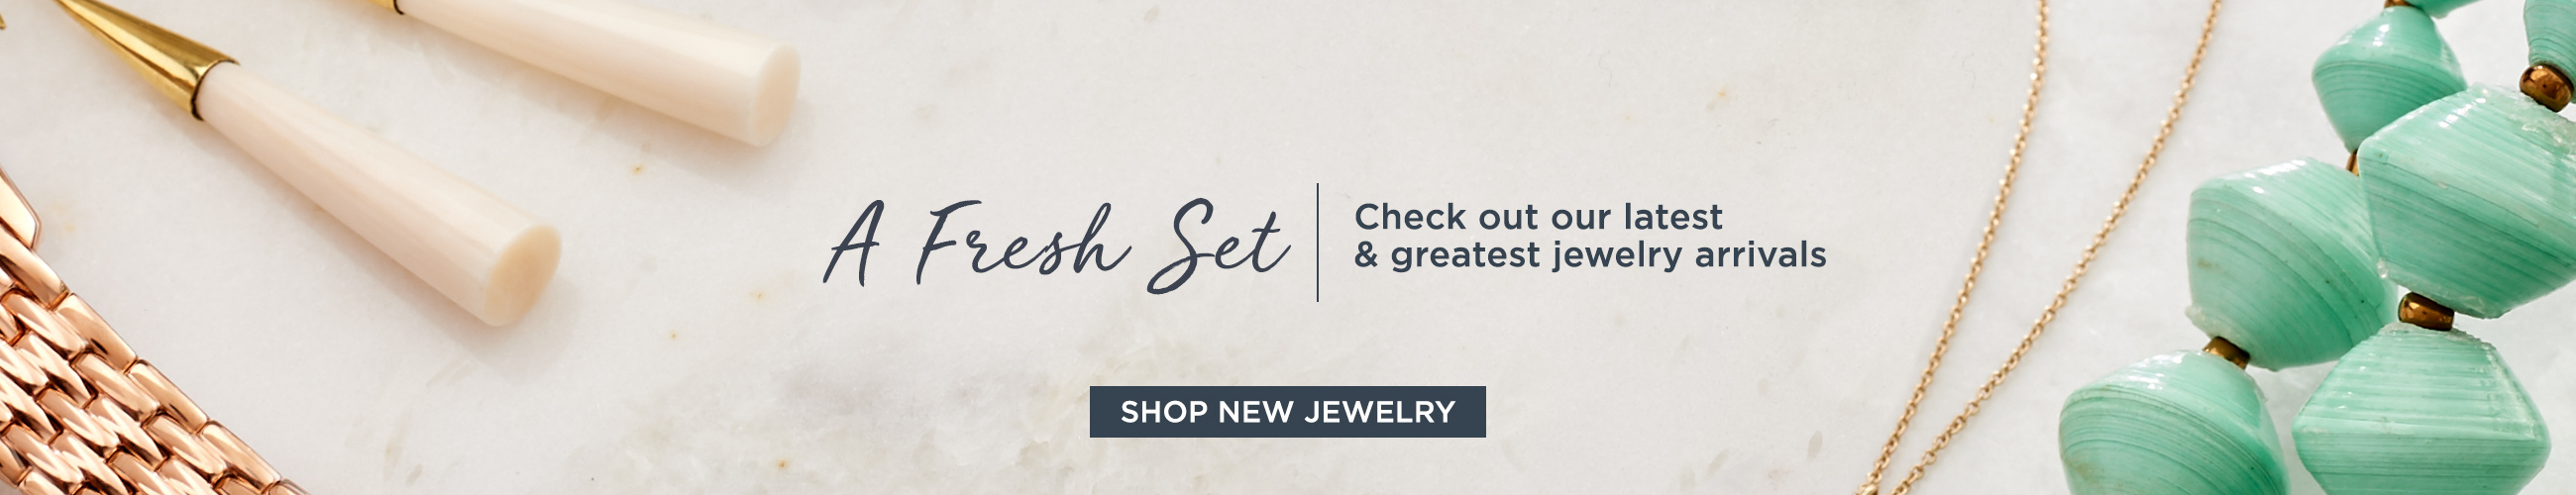 A Fresh Set. Check out our latest & greatest jewelry arrivals